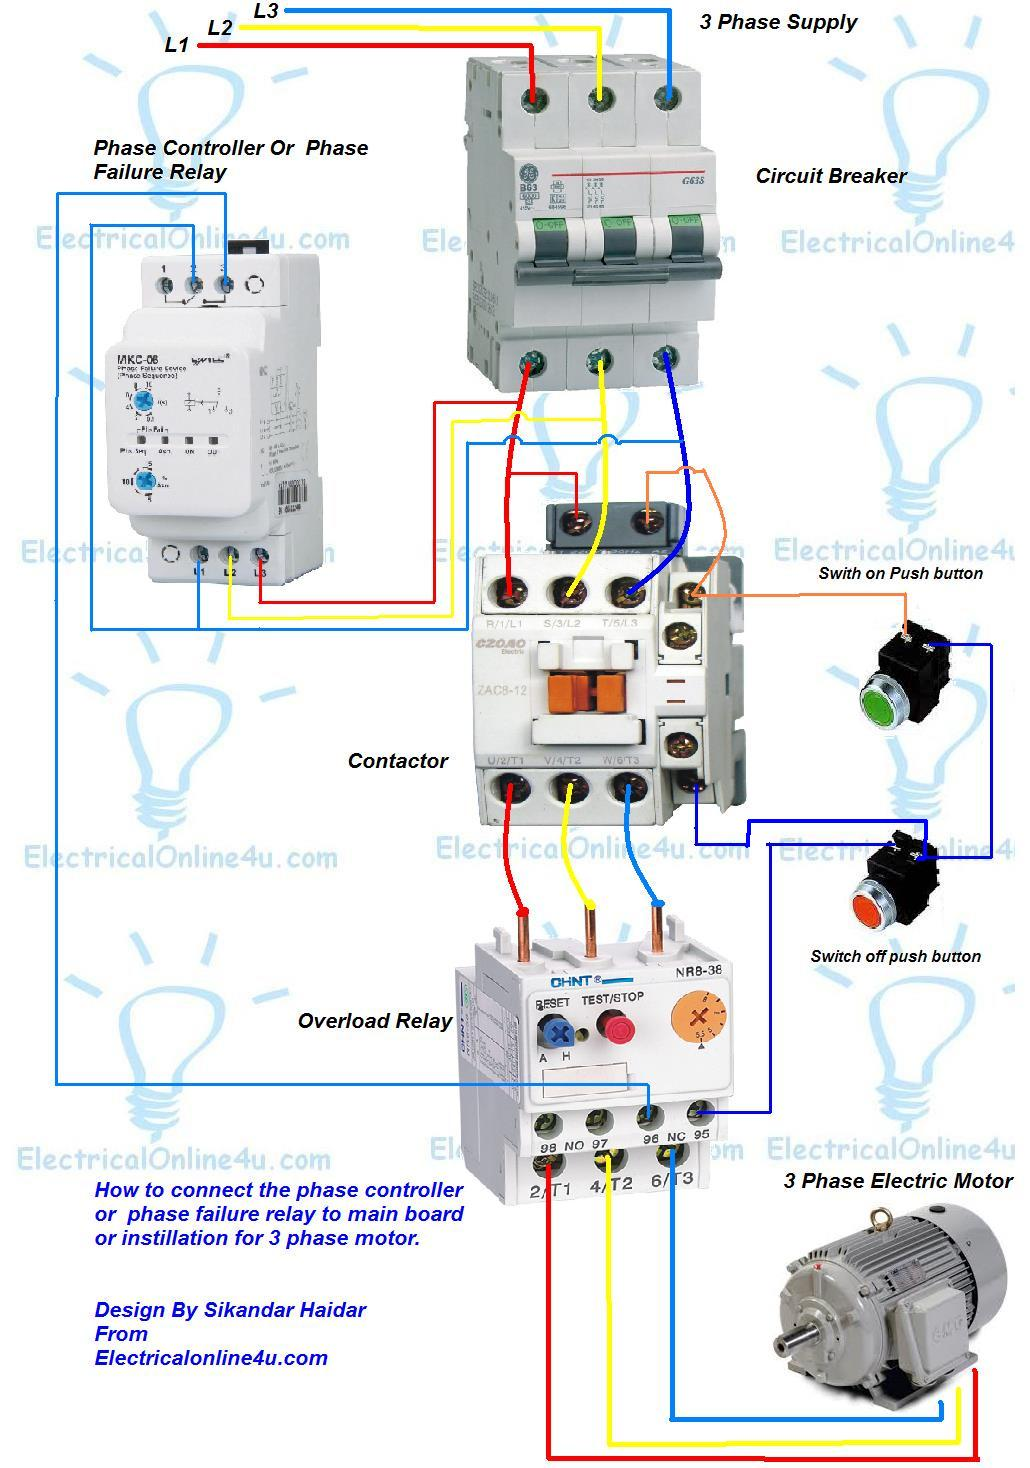 Phase%2Bfailure%2Brelay%2B %2Bphase%2Bcontroller%2Binstilaion%2Bin%2B3%2Bphase%2BMain%2Bboard%2Bor%2Bfor%2B3%2Bphase%2Bmotor phase controller wiring phase failure relay diagram electrical relay wiring diagram at gsmx.co